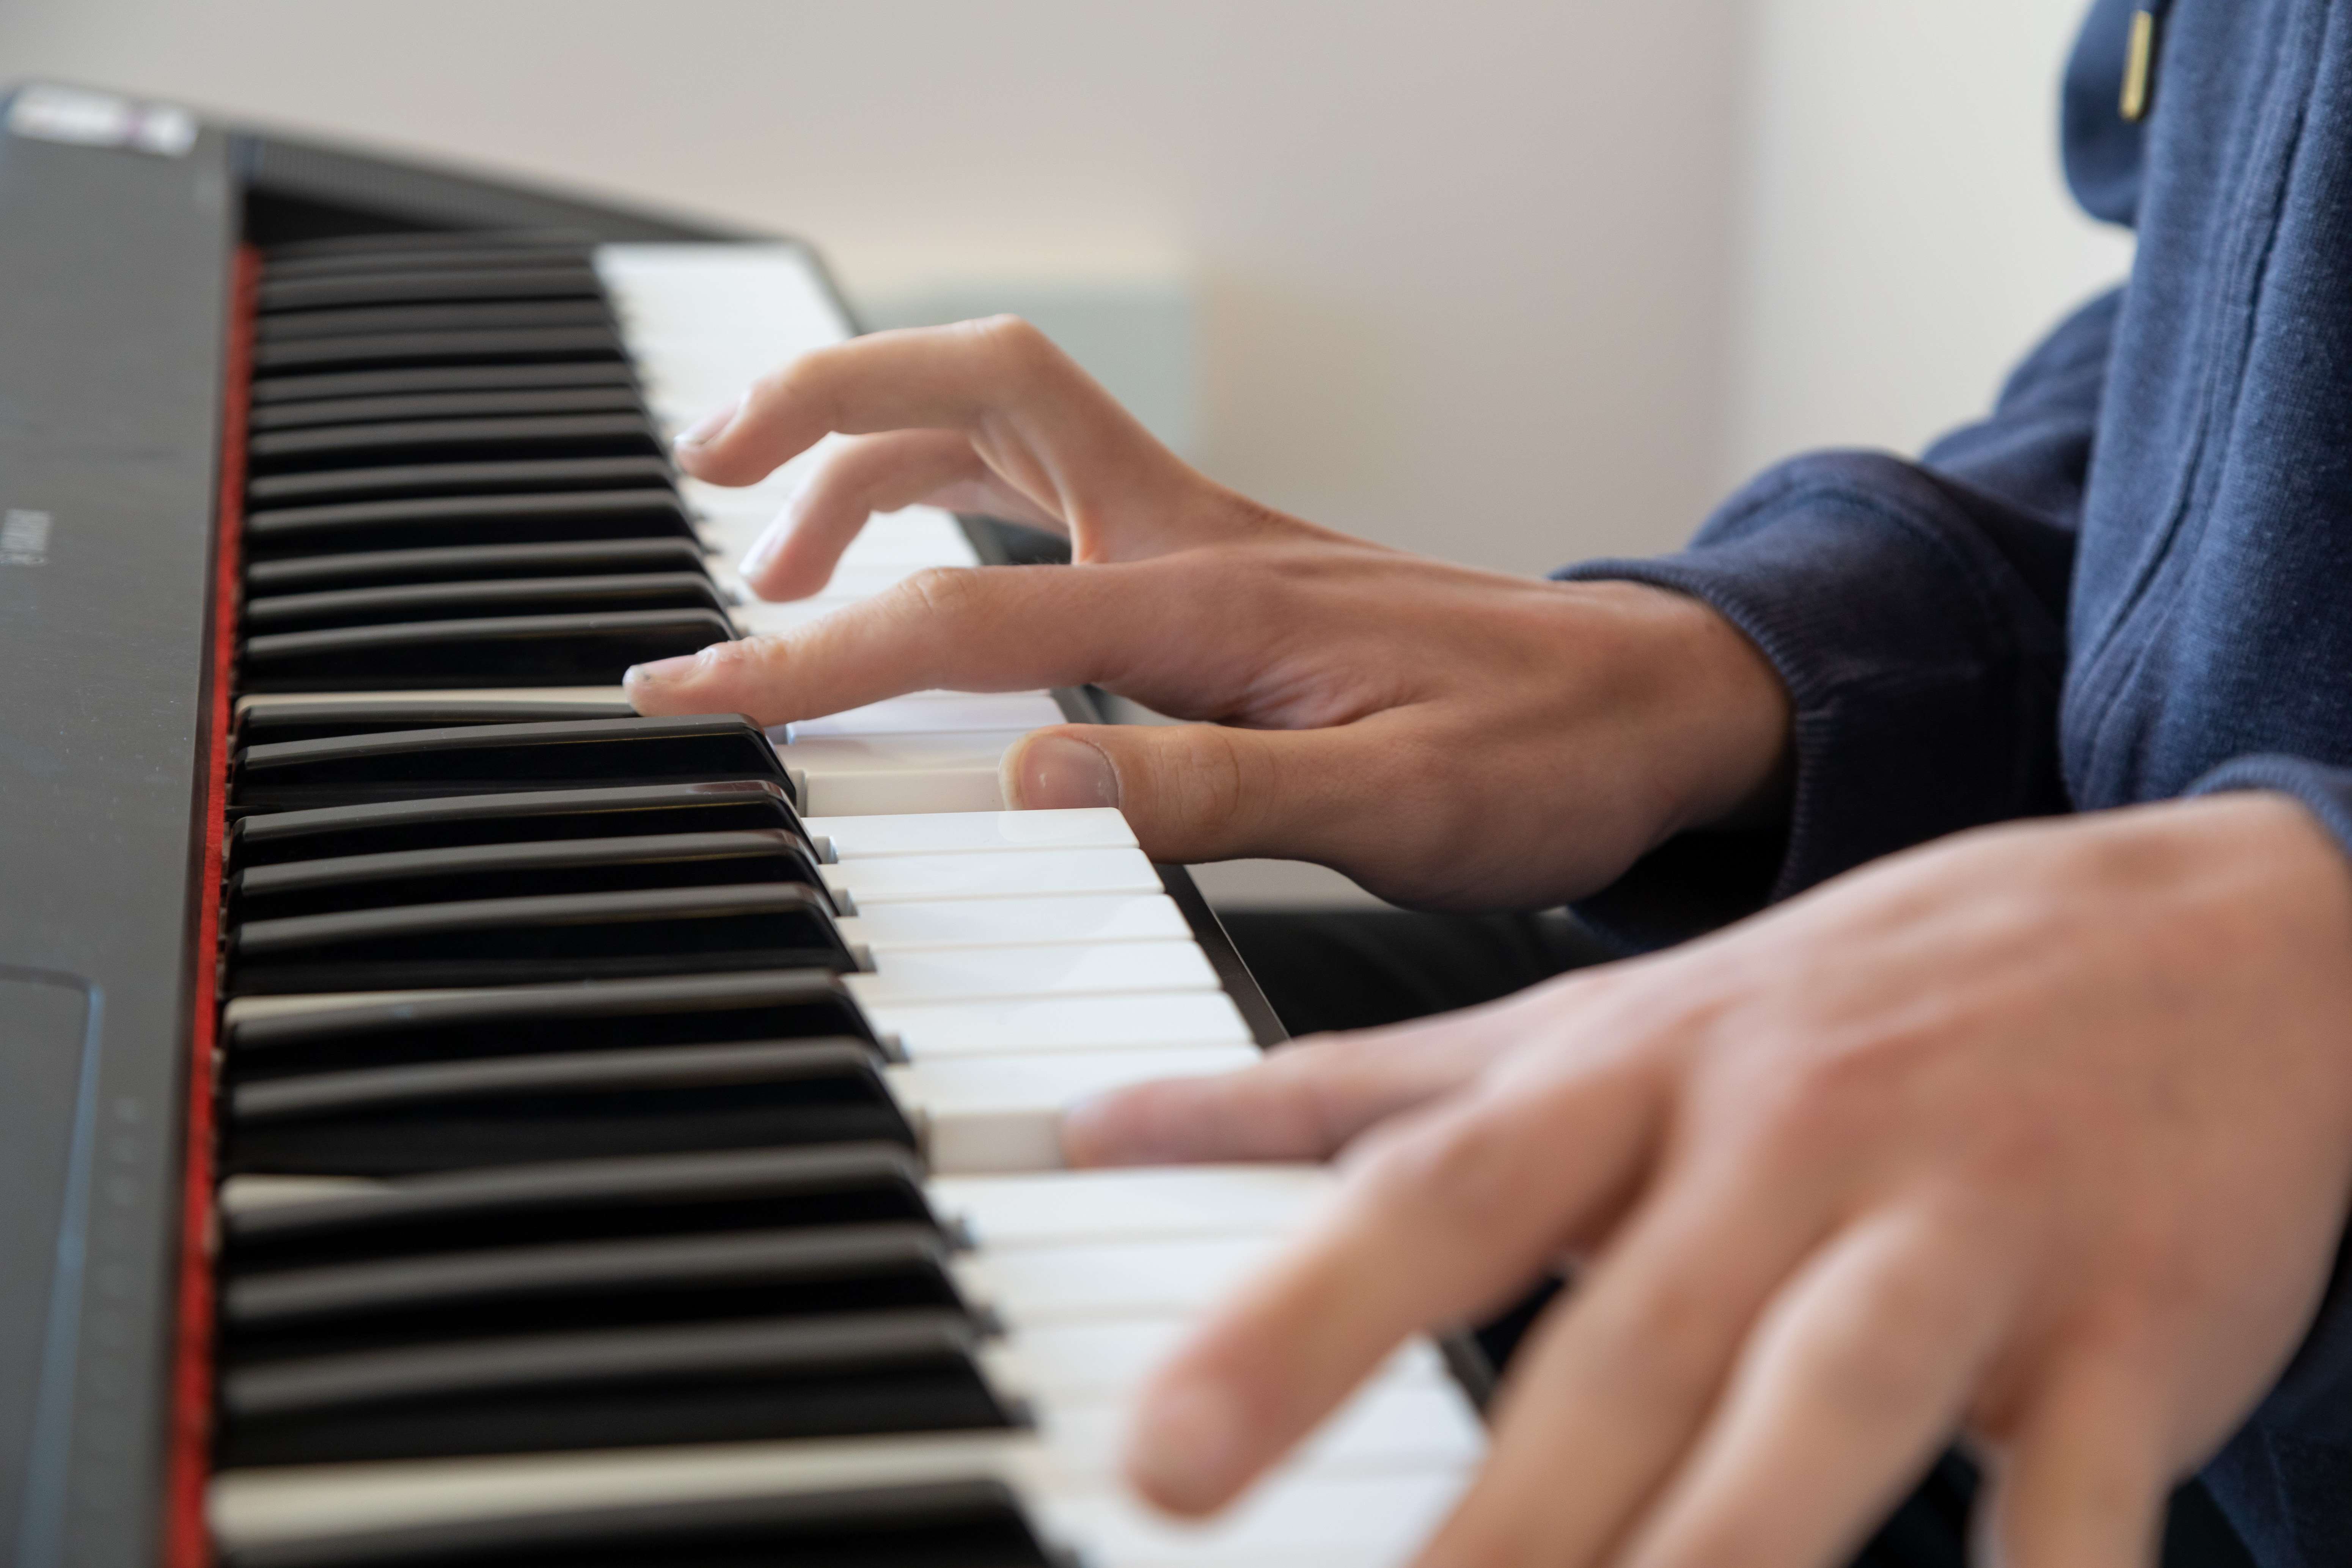 Music student playing the keyboard.